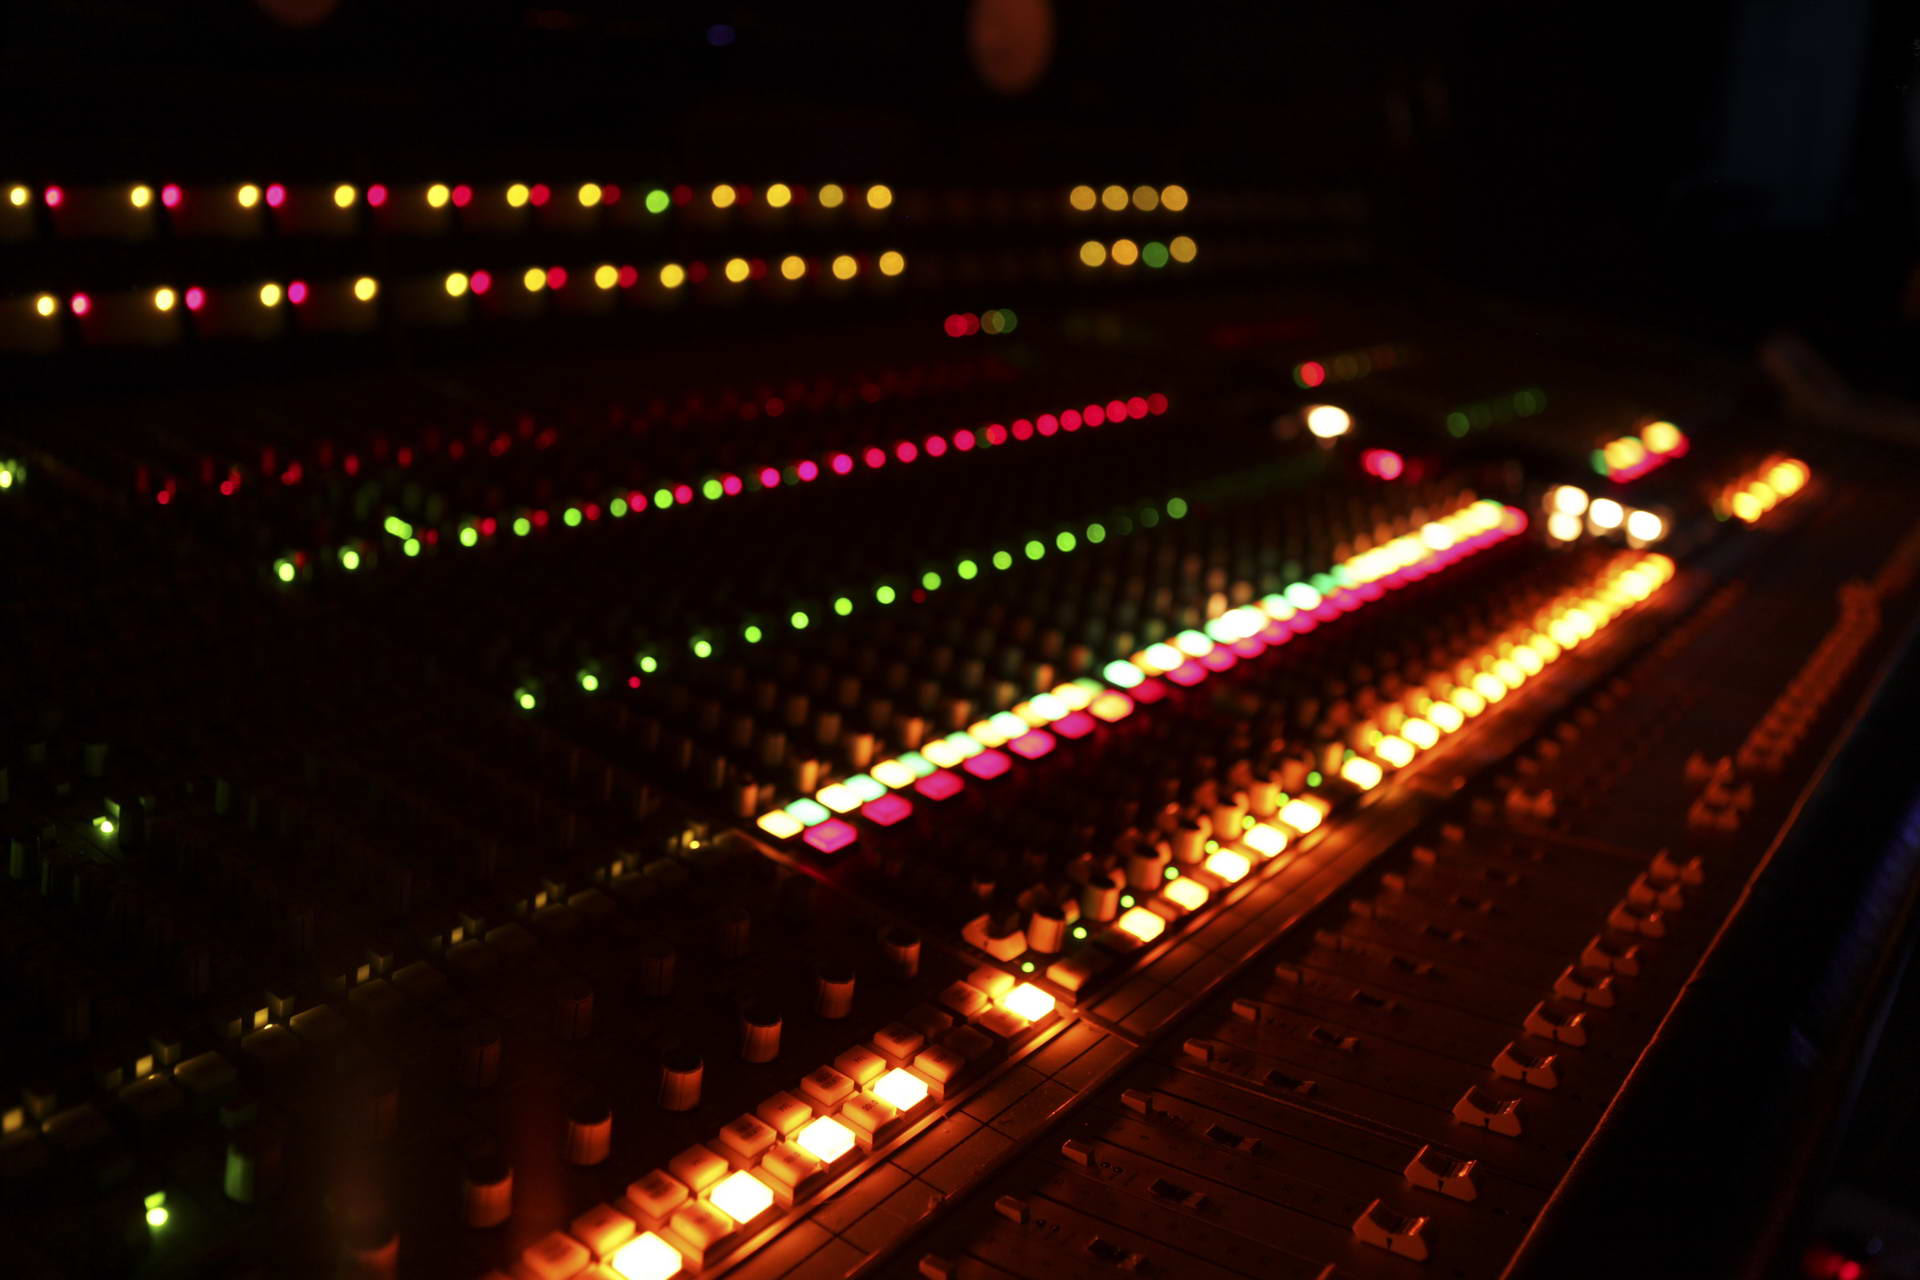 Wallpapers For Recording Studio Background Wallpaper 1920x1280